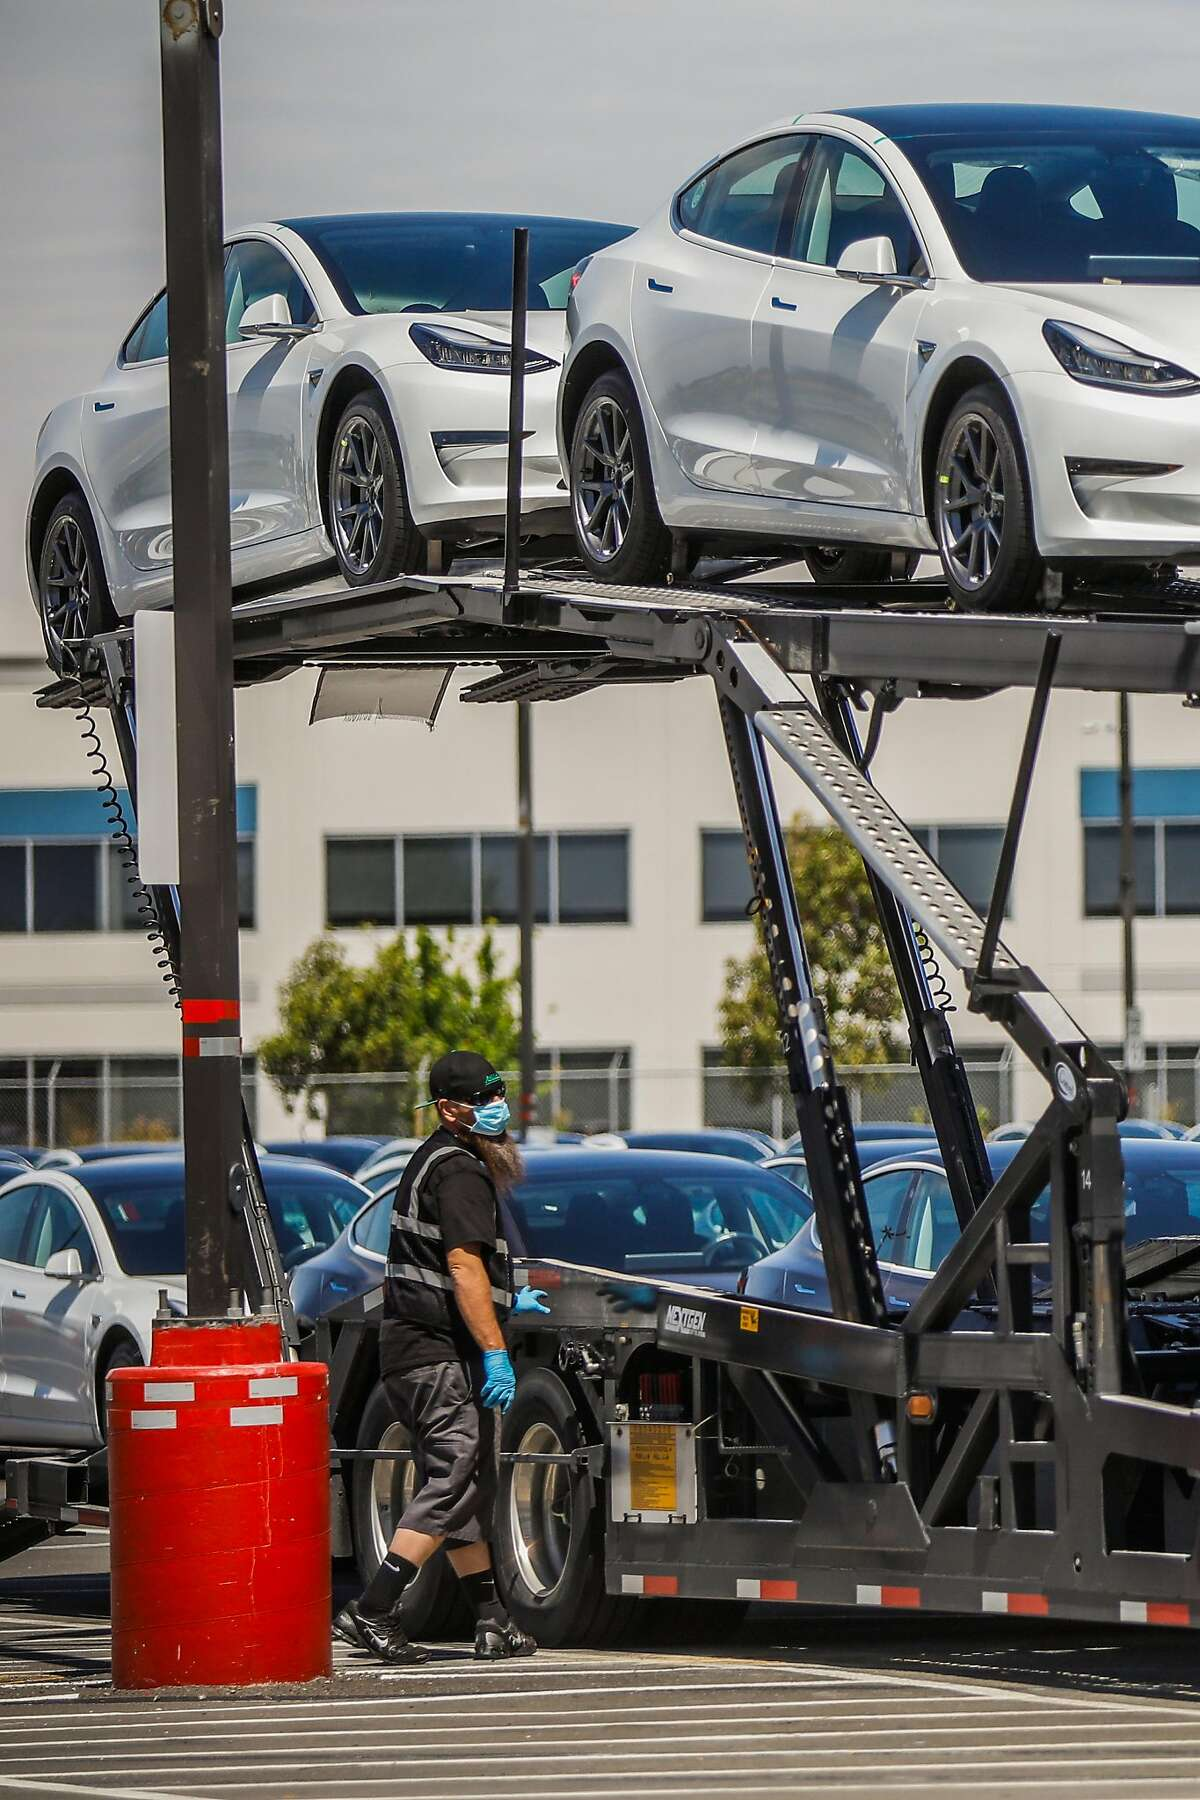 A man loads cars at the Tesla car factory on Monday, May 11, 2020 in Fremont, California. Tesla has reopened its Fremont car factory in defiance of county rules prohibiting car manufacturing during shelter-in-place.